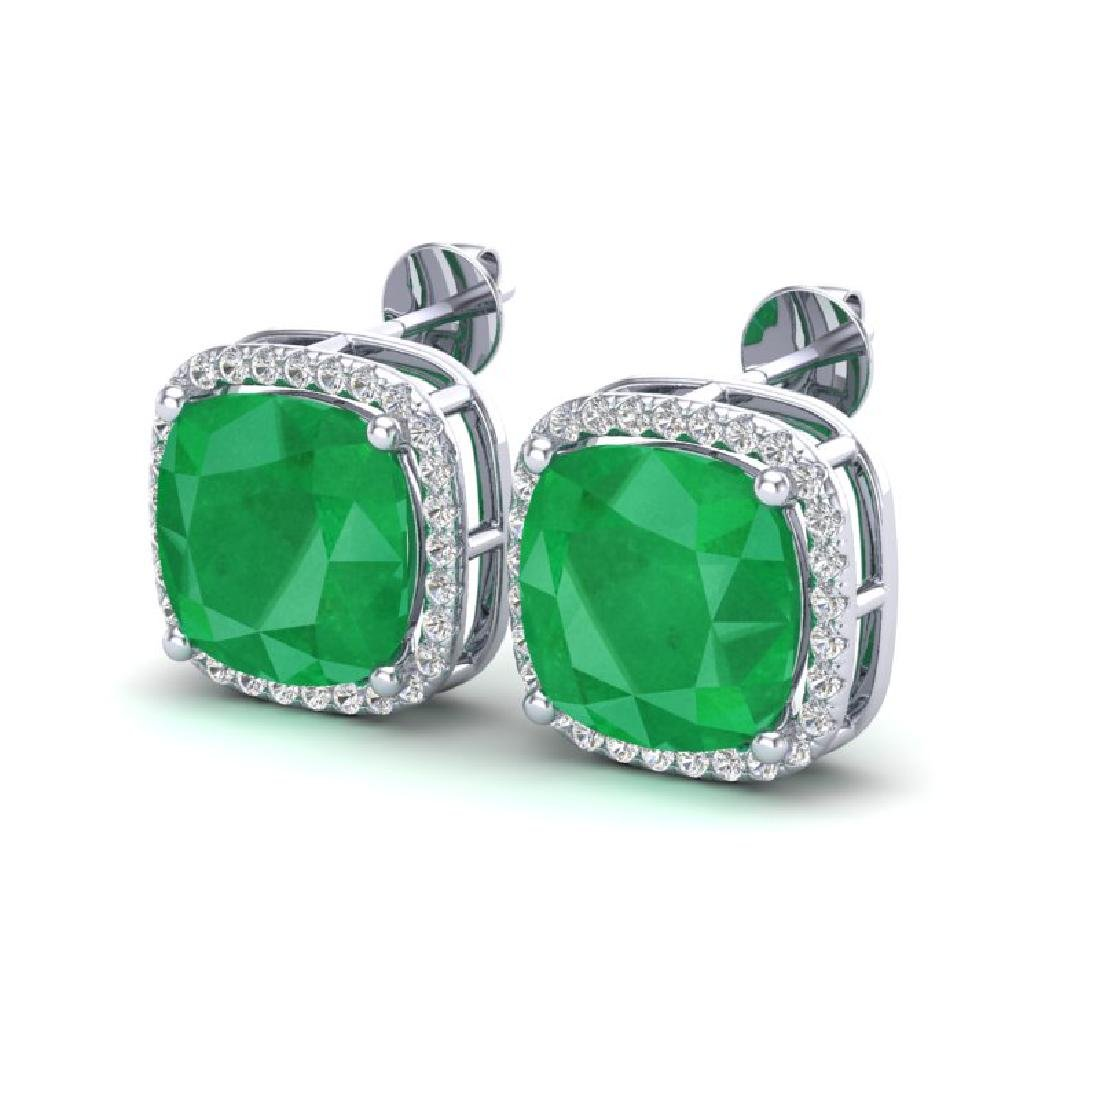 12 CTW Emerald & Micro Pave Halo VS/SI Diamond Earrings